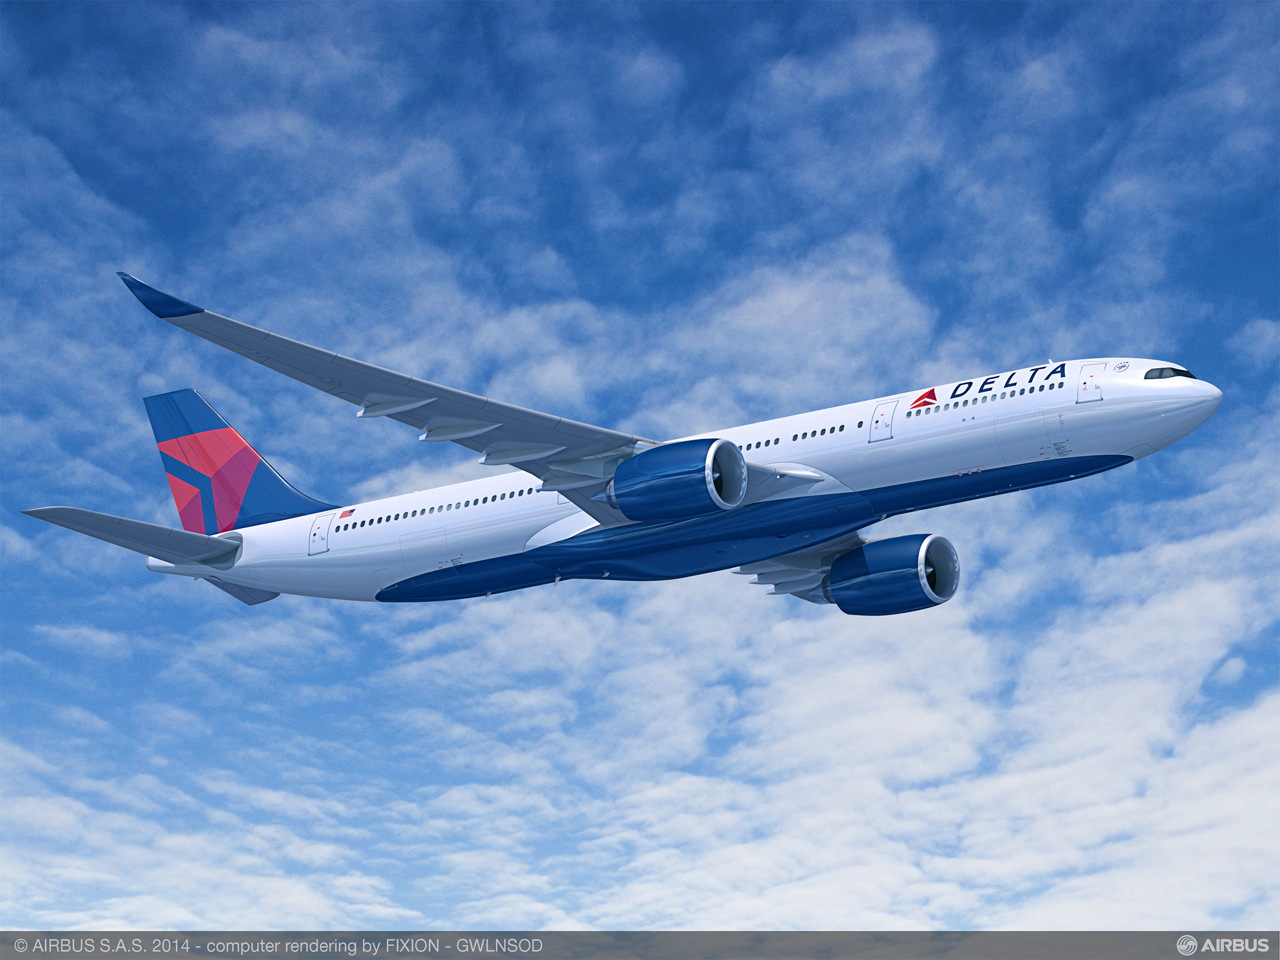 Delta Air Lines' order for 10 Airbus A330-900 widebody aircraft will strengthen this U.S.-based carrier's international growth strategy